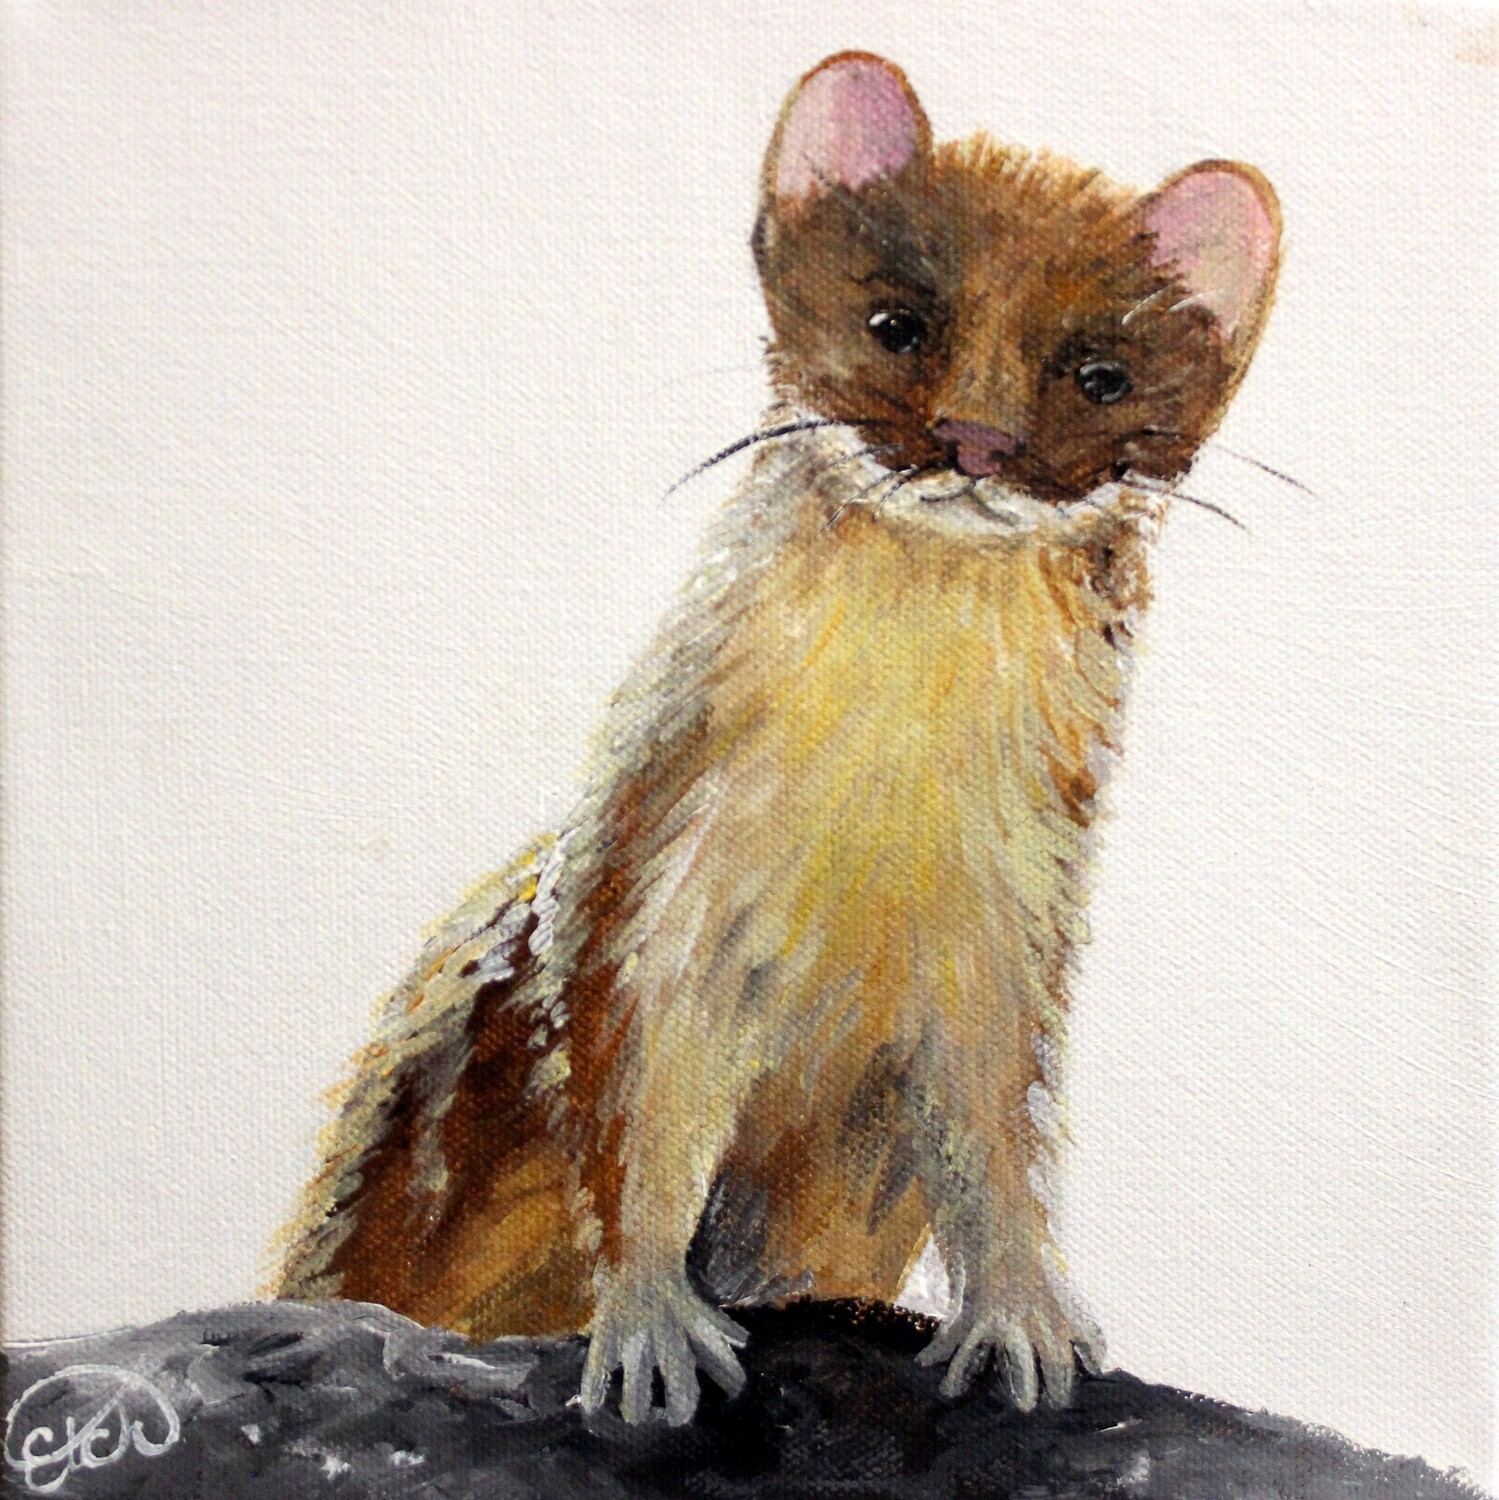 Available at ART FOCUS GALLERY: Weasel Mini!